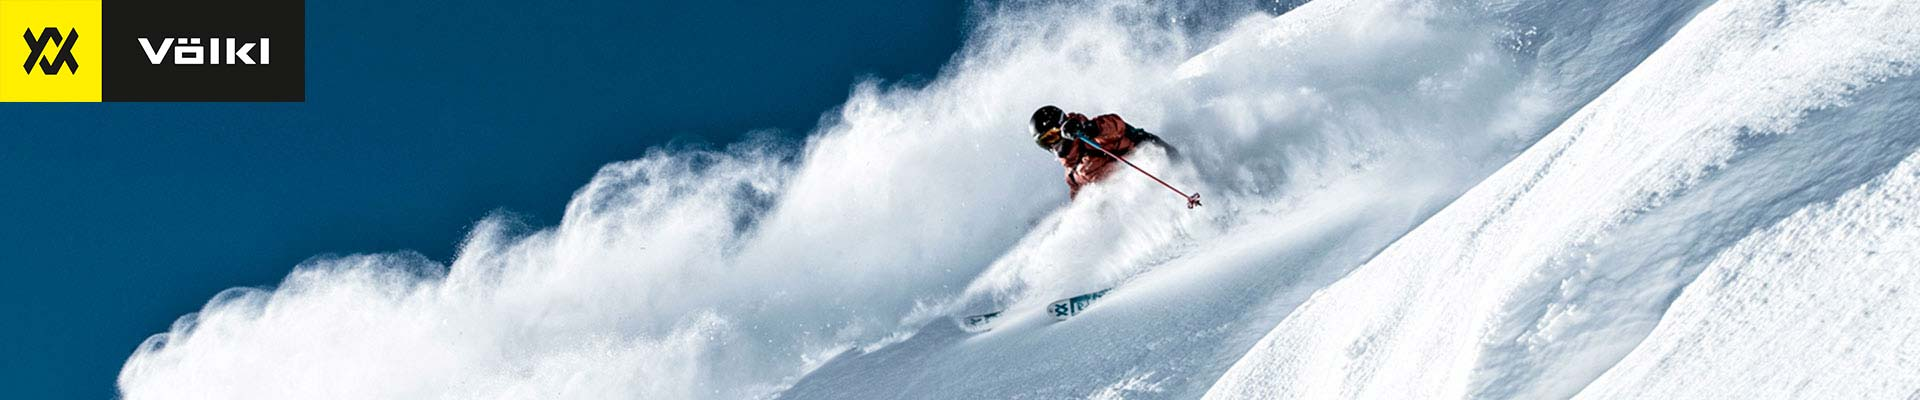 Shop Volkl Skis & Equipment at your local Source For Sports ski & snowboard store